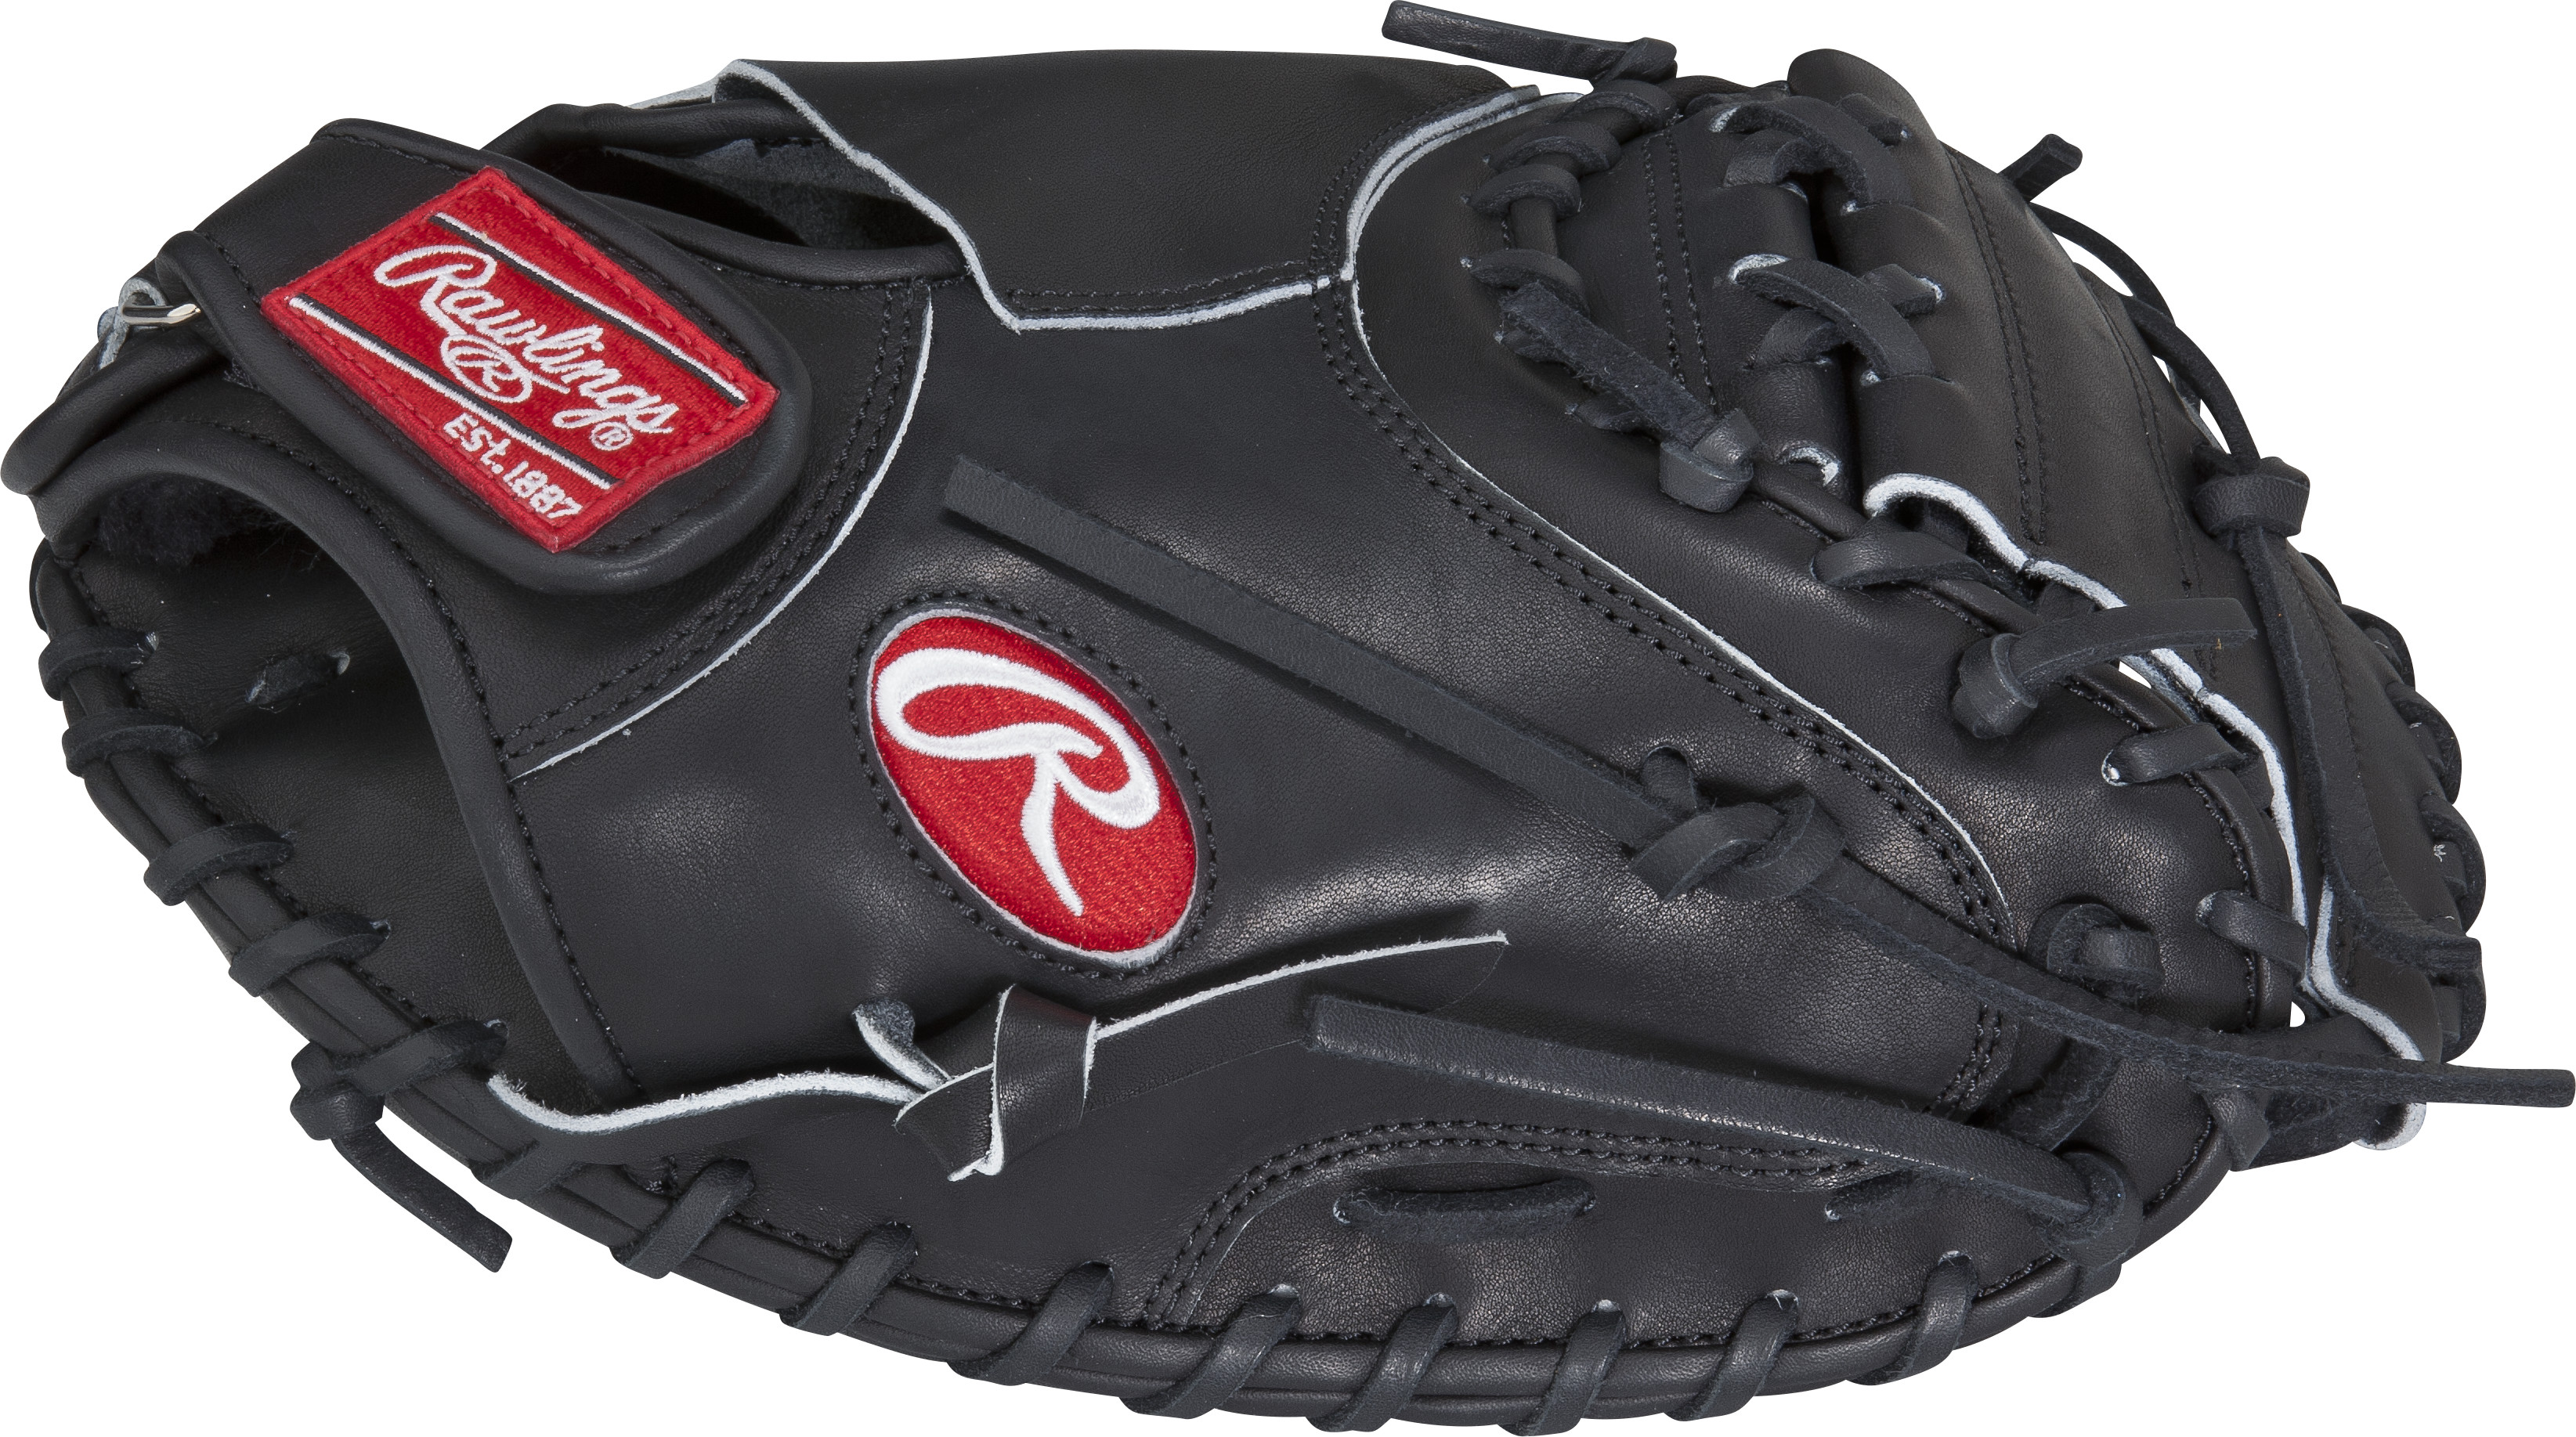 http://www.bestbatdeals.com/images/gloves/rawlings/PROSP13B_thumb.jpg